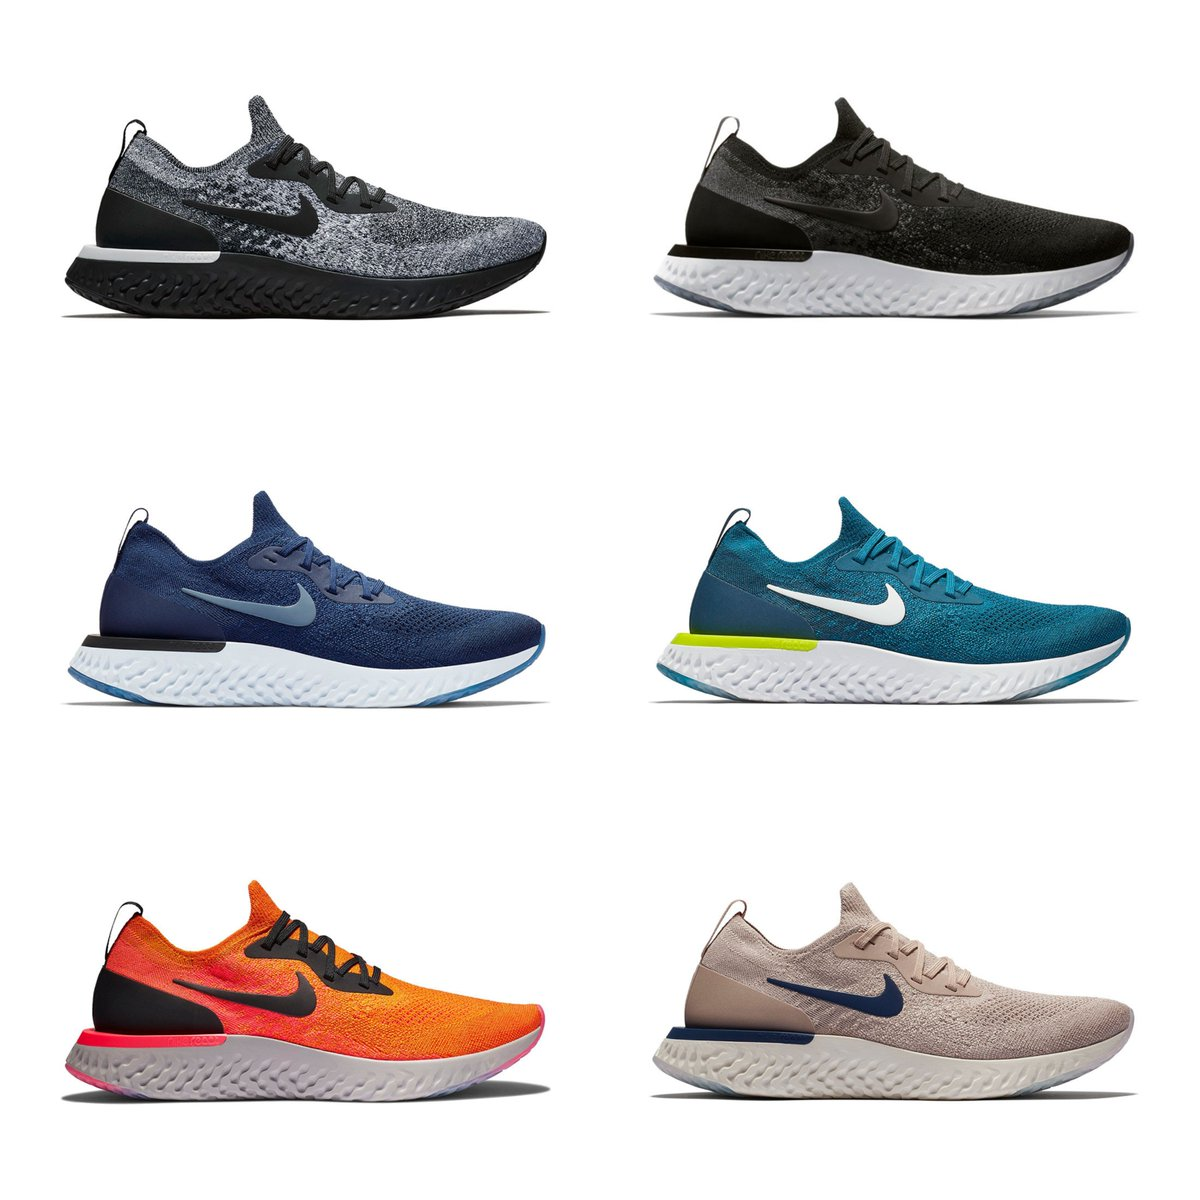 eebb05dd5 50% OFF + FREE shipping on select Nike Epic React Flyknit colorways SHOP  SALE: http://bit.ly/2PHpIw6 pic.twitter.com/cPBBKv7qJf